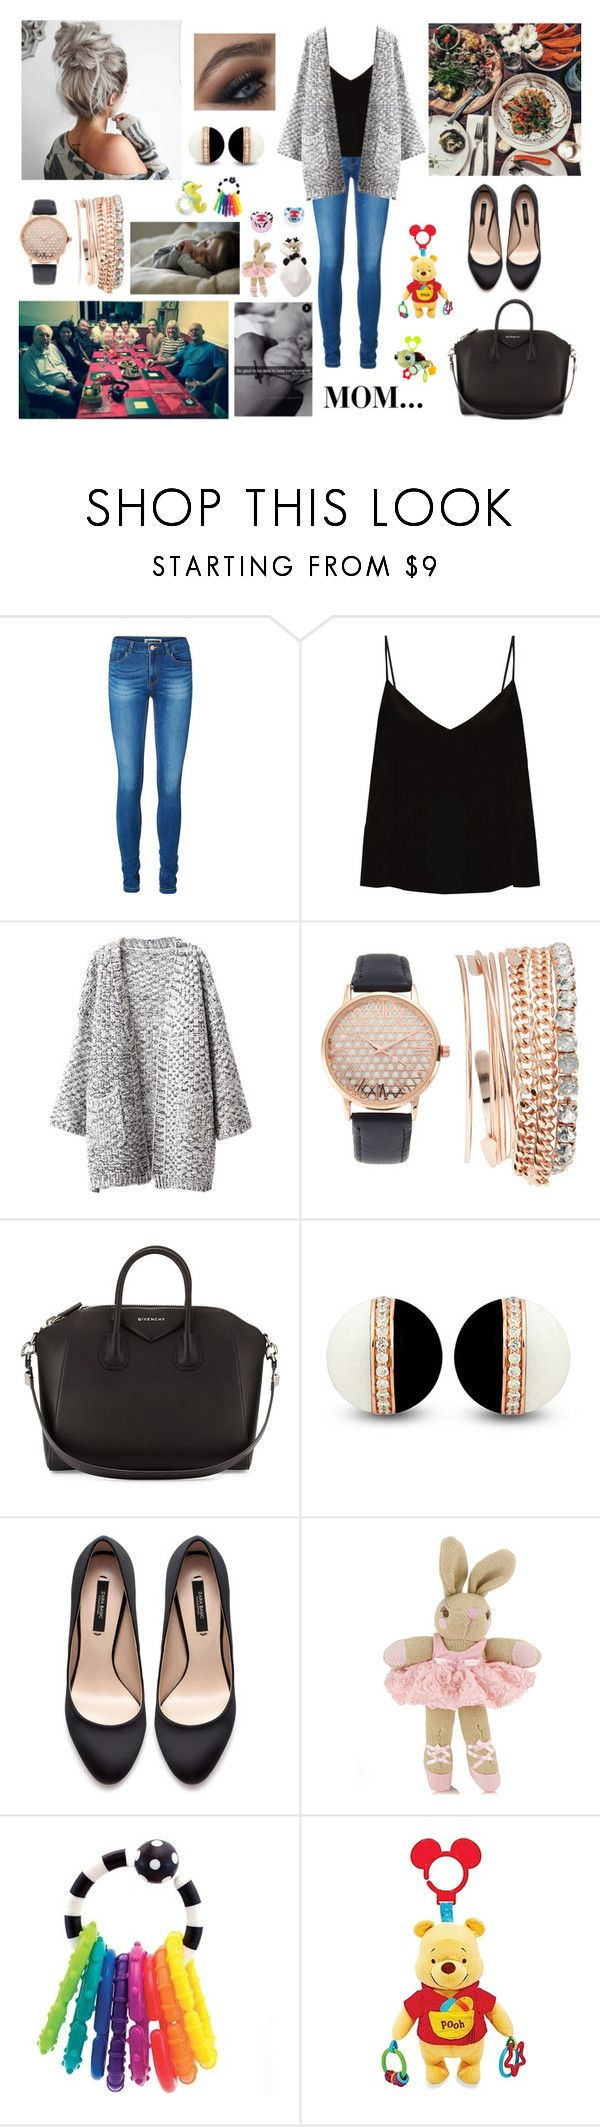 """""""Dinner with Harry's Family"""" by louisericoul ❤ liked on Polyvore featuring Vero Moda, GET LOST, Raey, Chicnova Fashion, Jessica Carlyle, Givenchy, Zara, Monsoon, Carter's and Disney"""